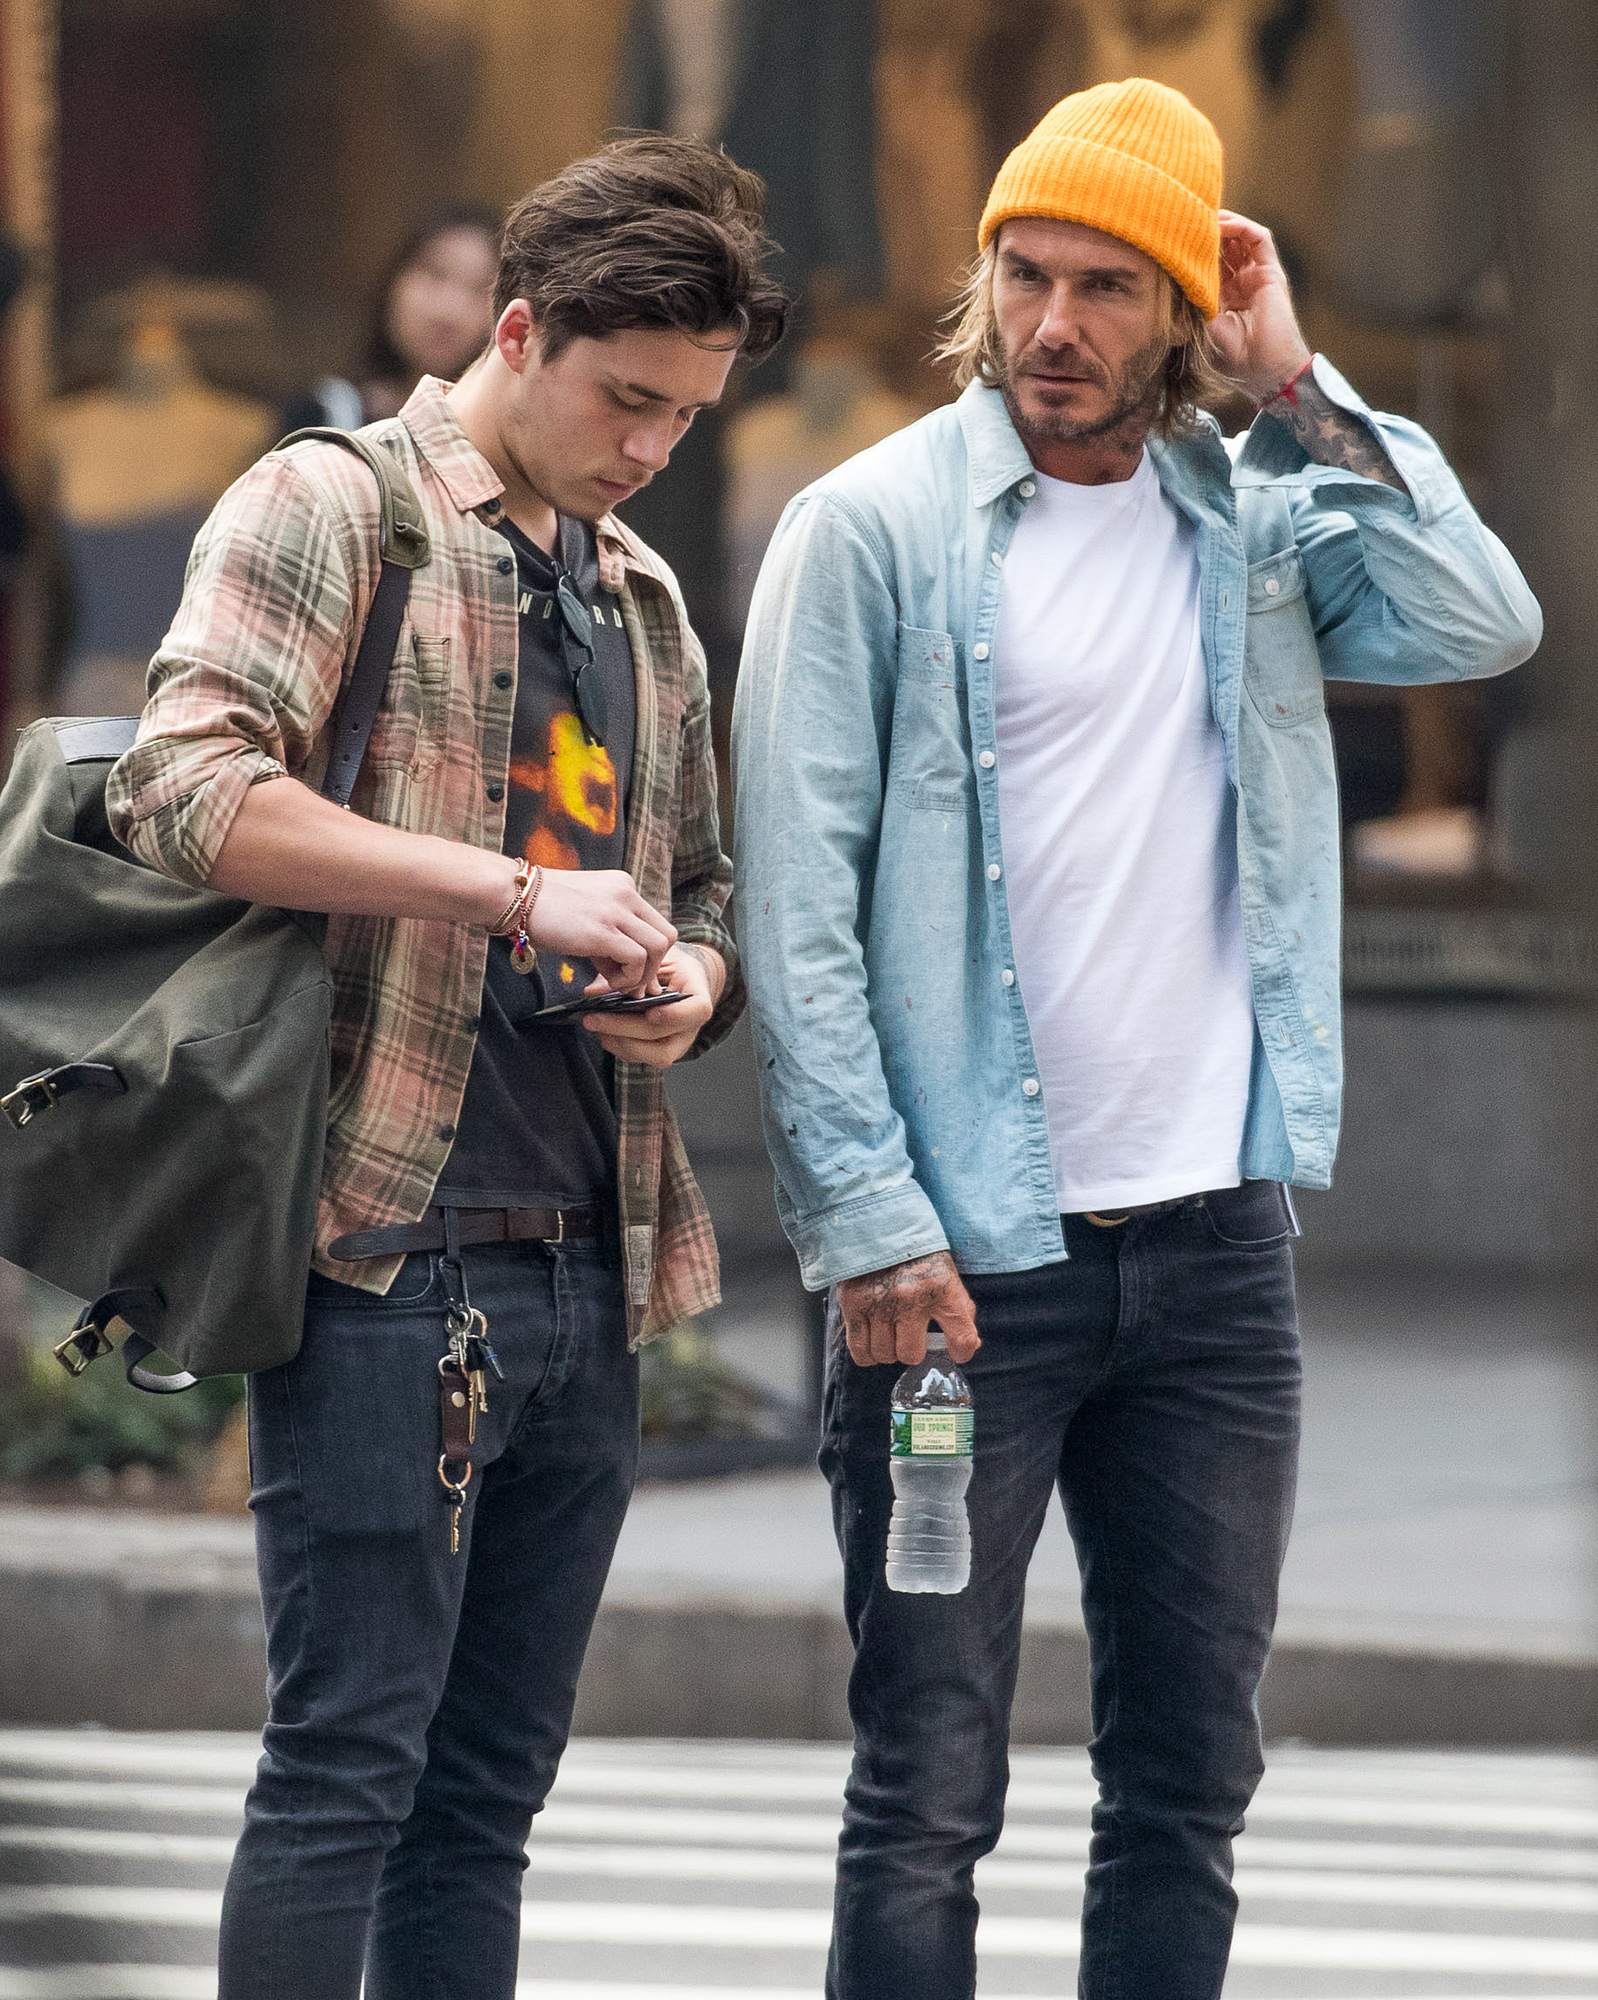 EXCLUSIVE: Brooklyn Beckham takes dad to Orientation Day at school